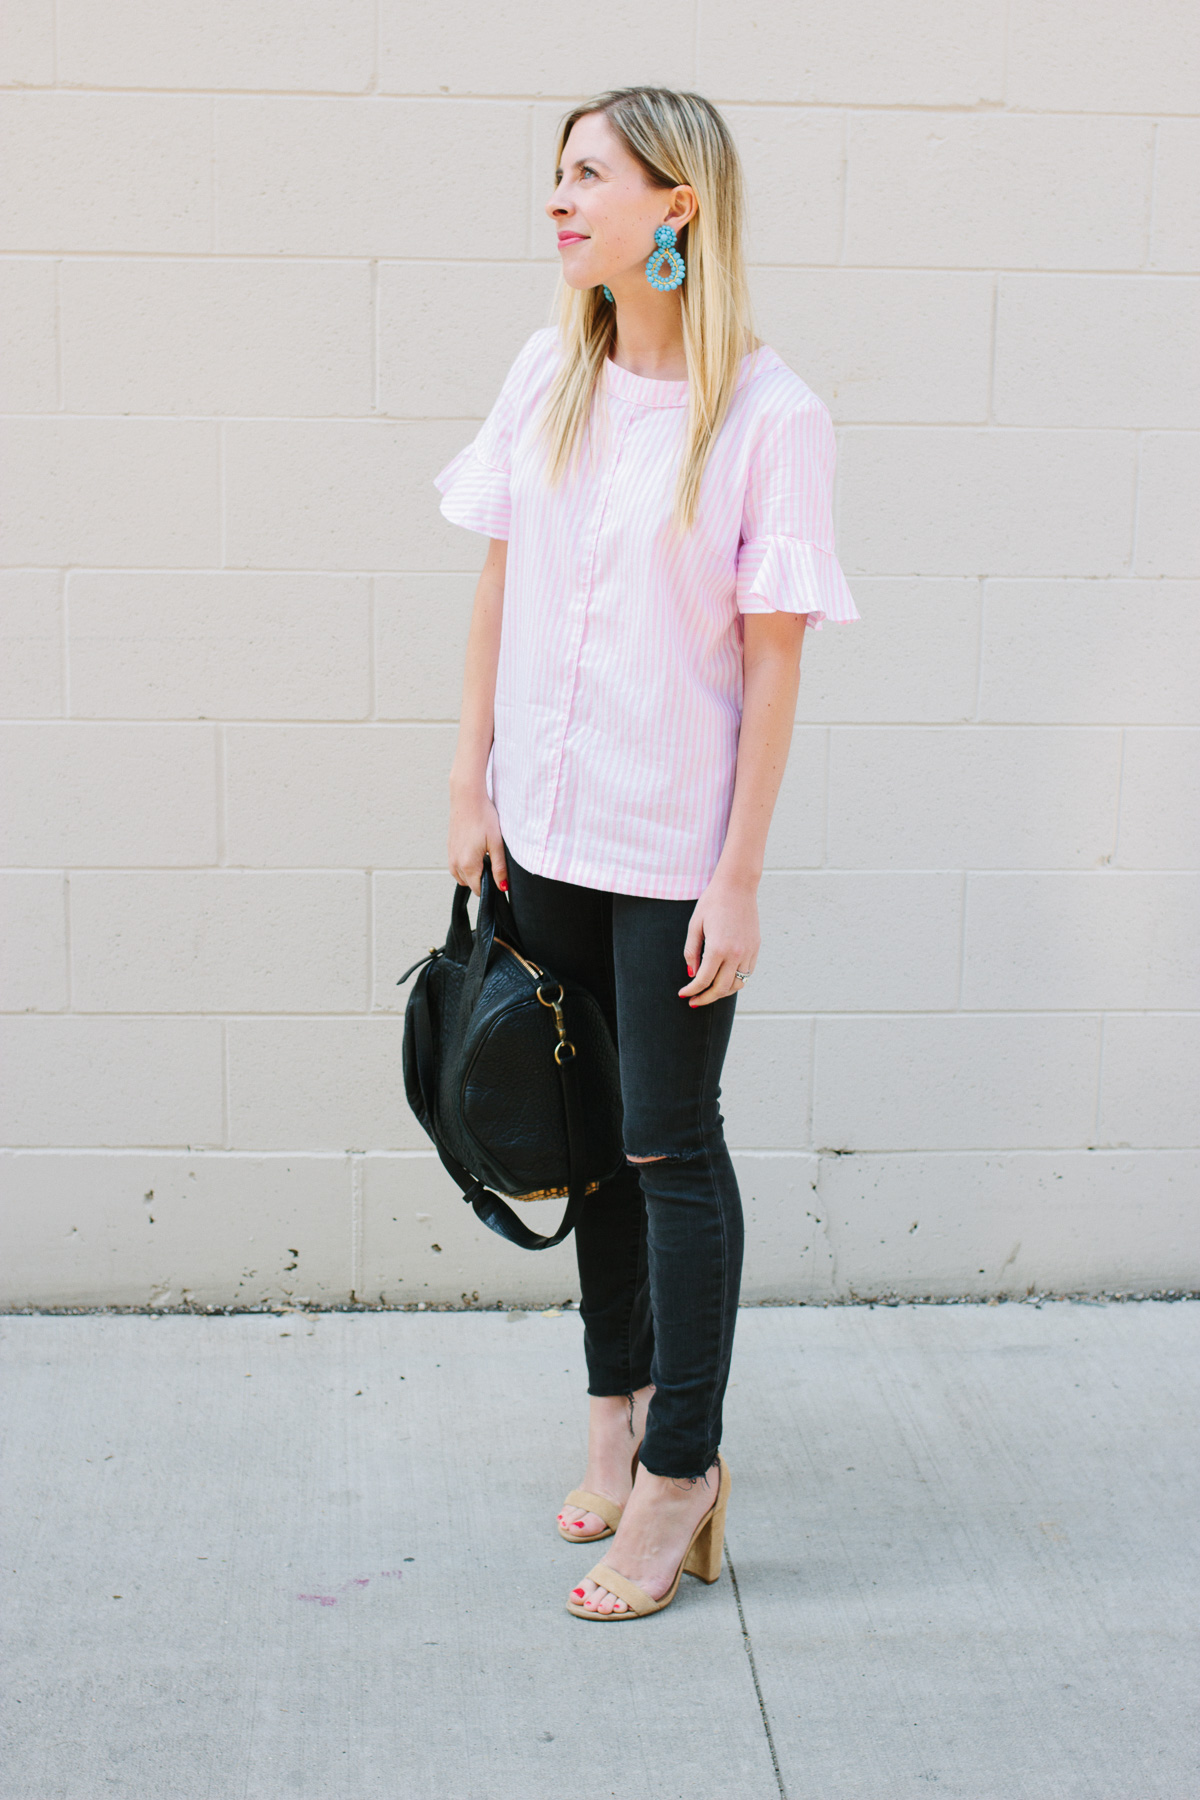 Stripe and Ruffle Top with Statement Earrings